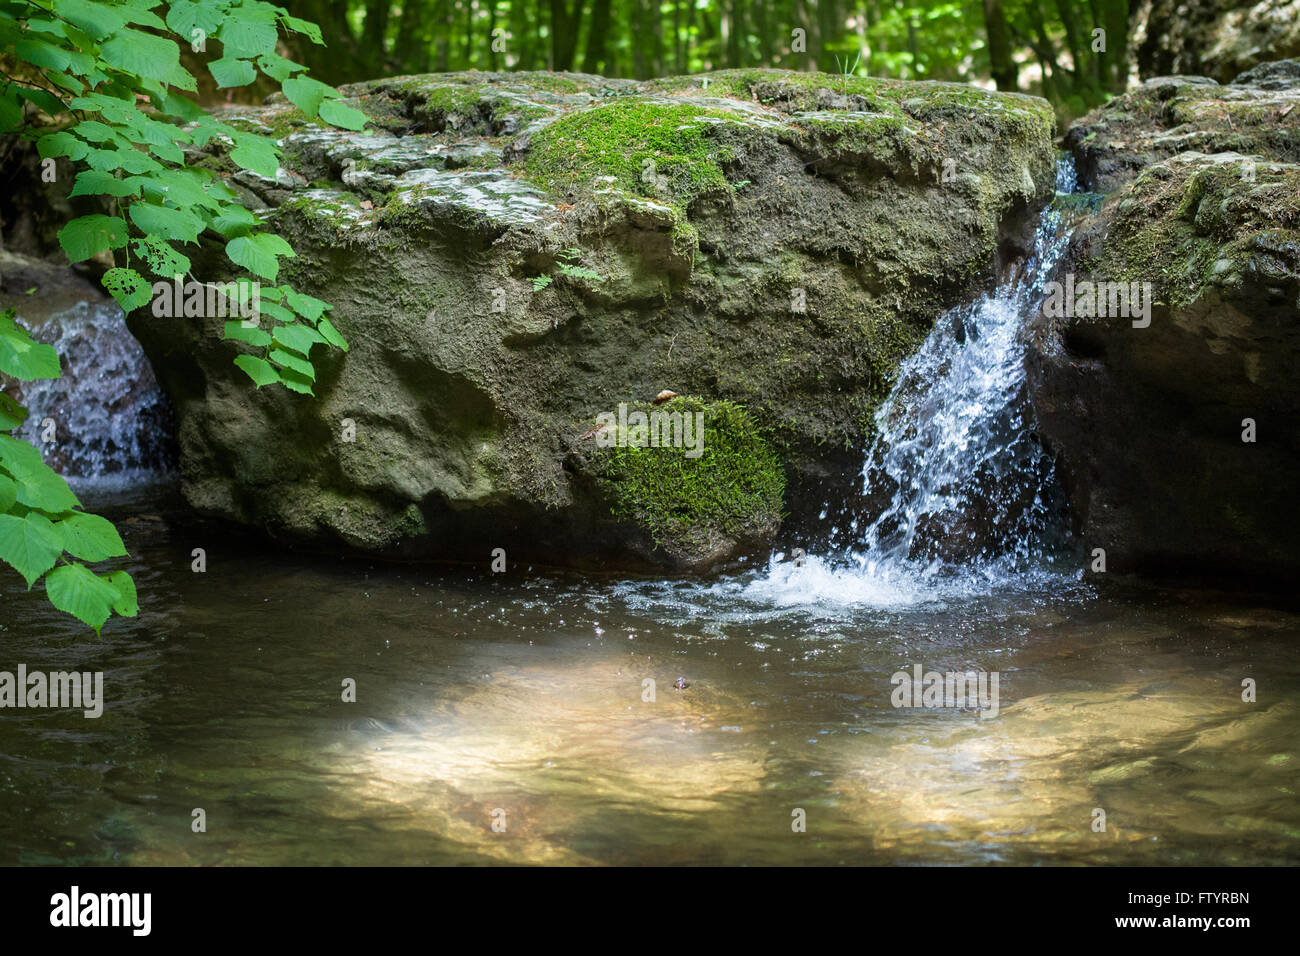 Small waterfall in forest with sun shining through water. - Stock Image